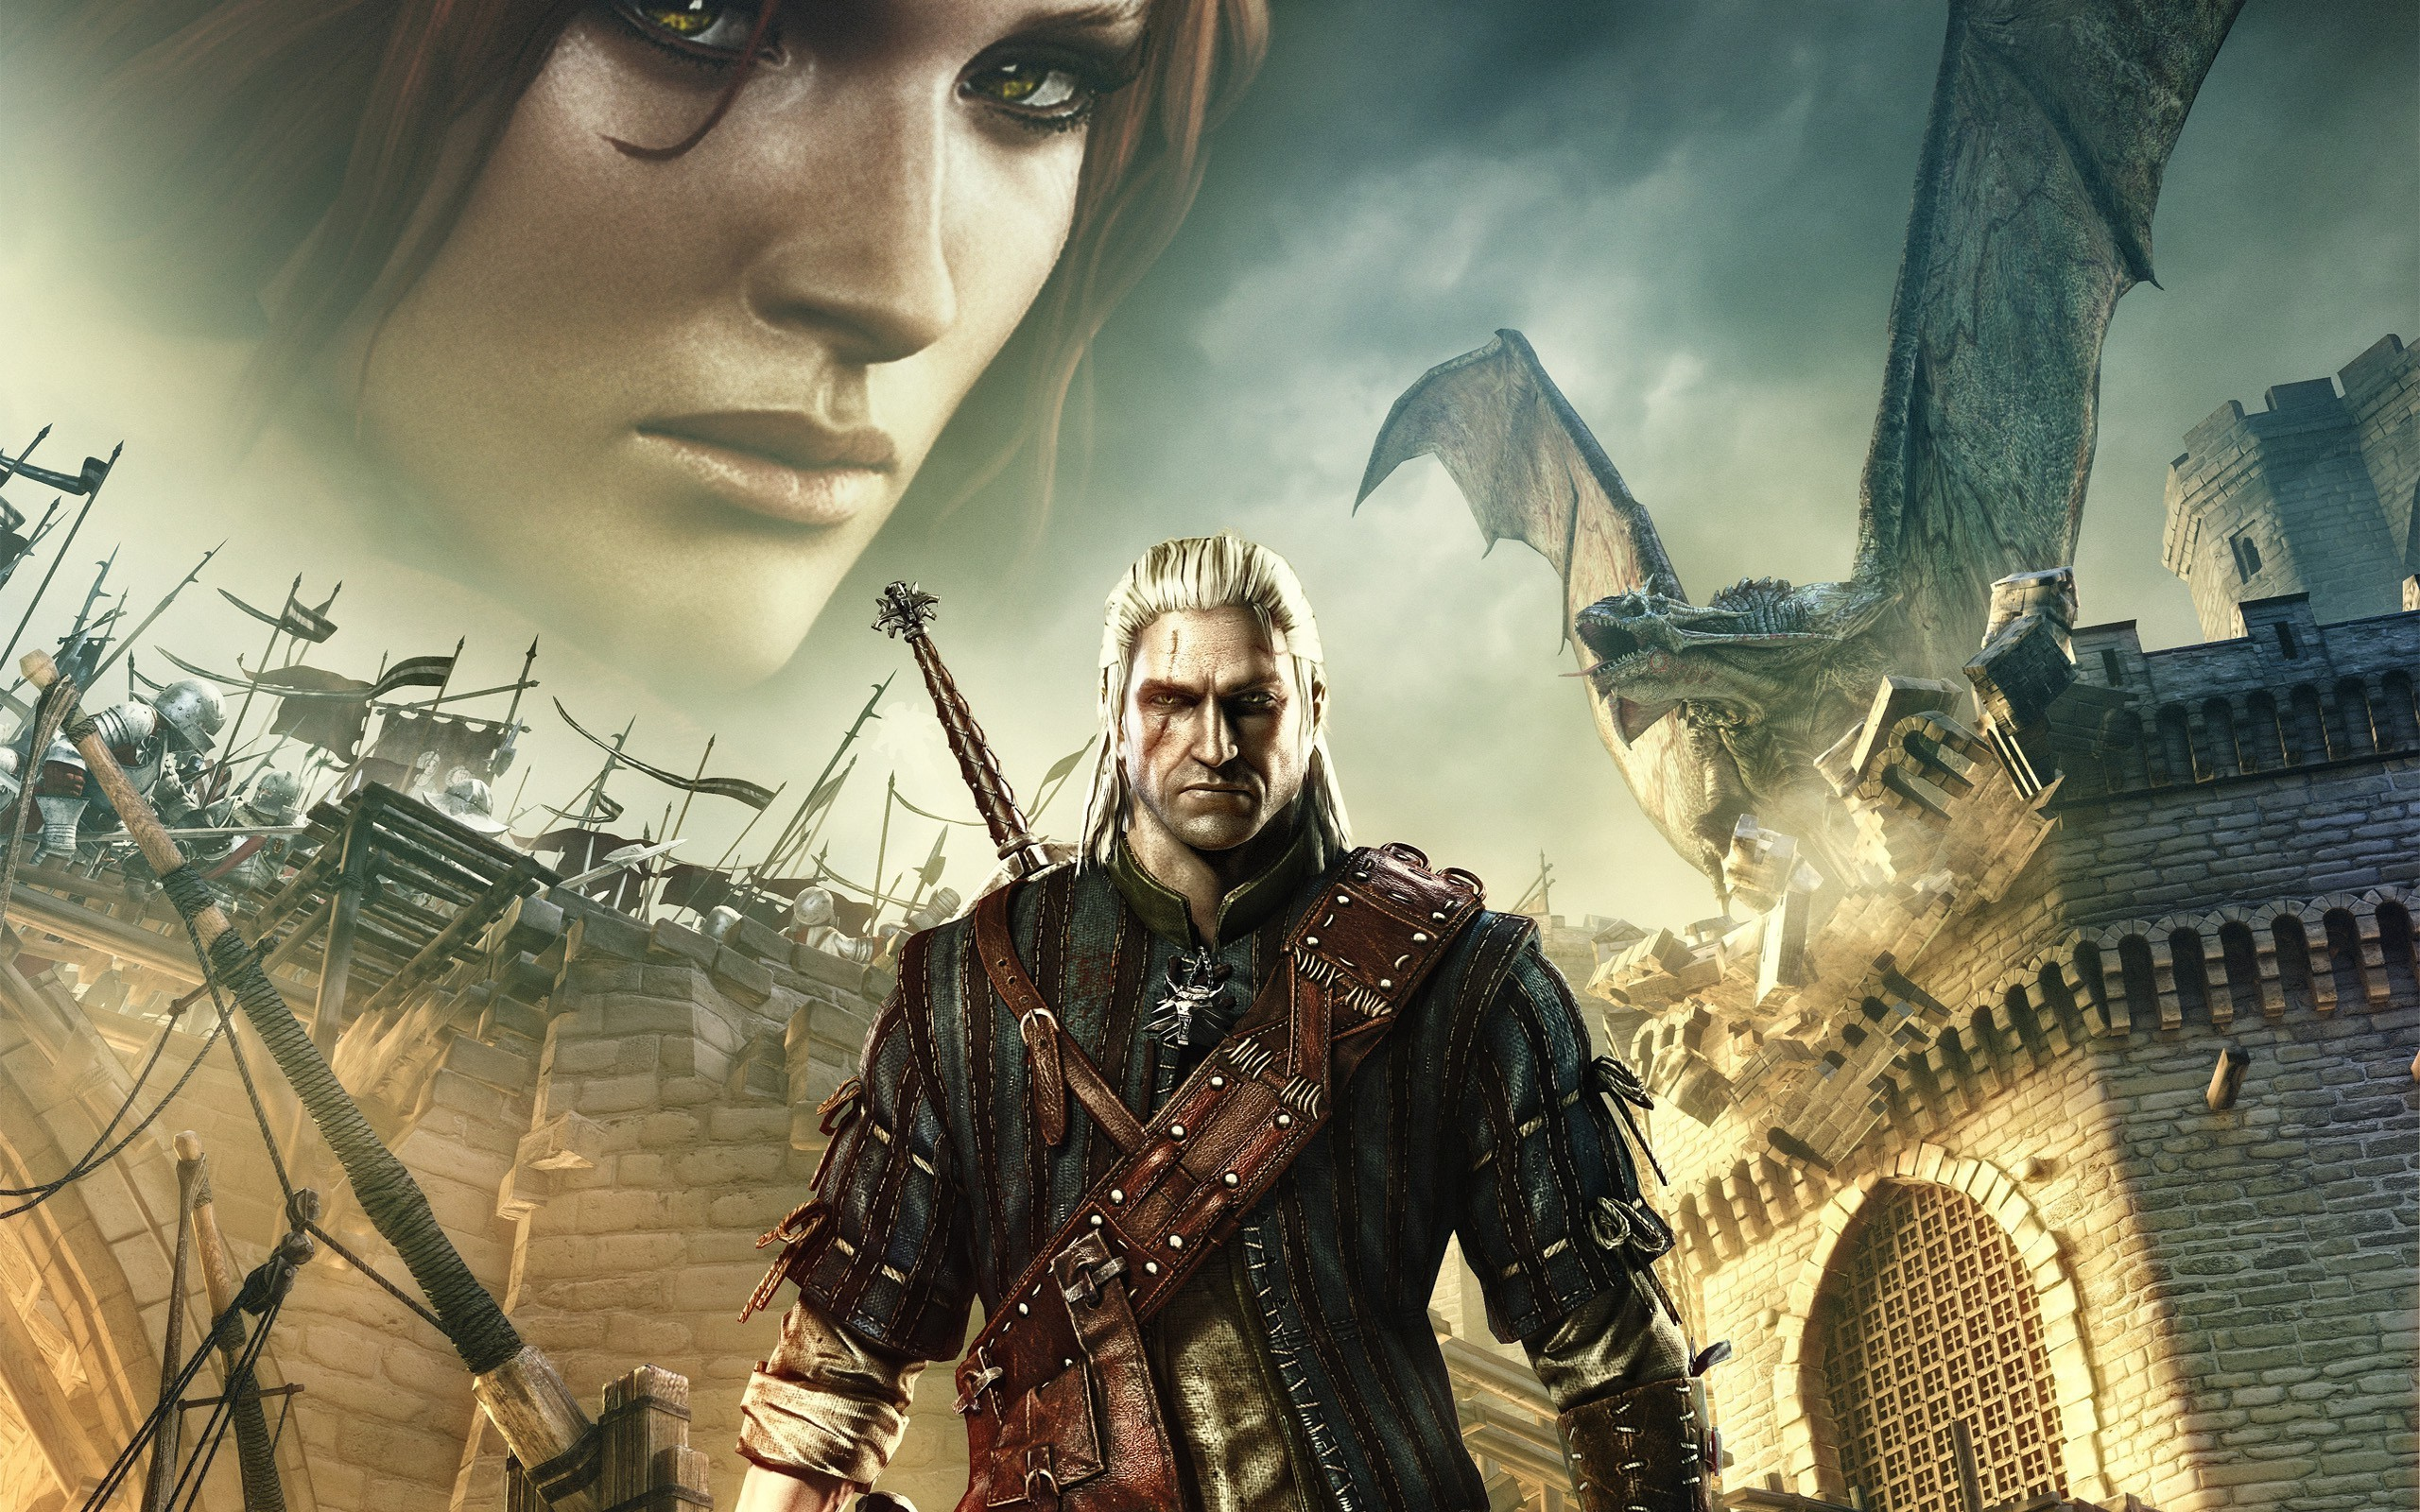 Res: 2560x1600, the witcher 2 assassins of kings the witcher triss merigold geralt of rivia  wallpaper and background